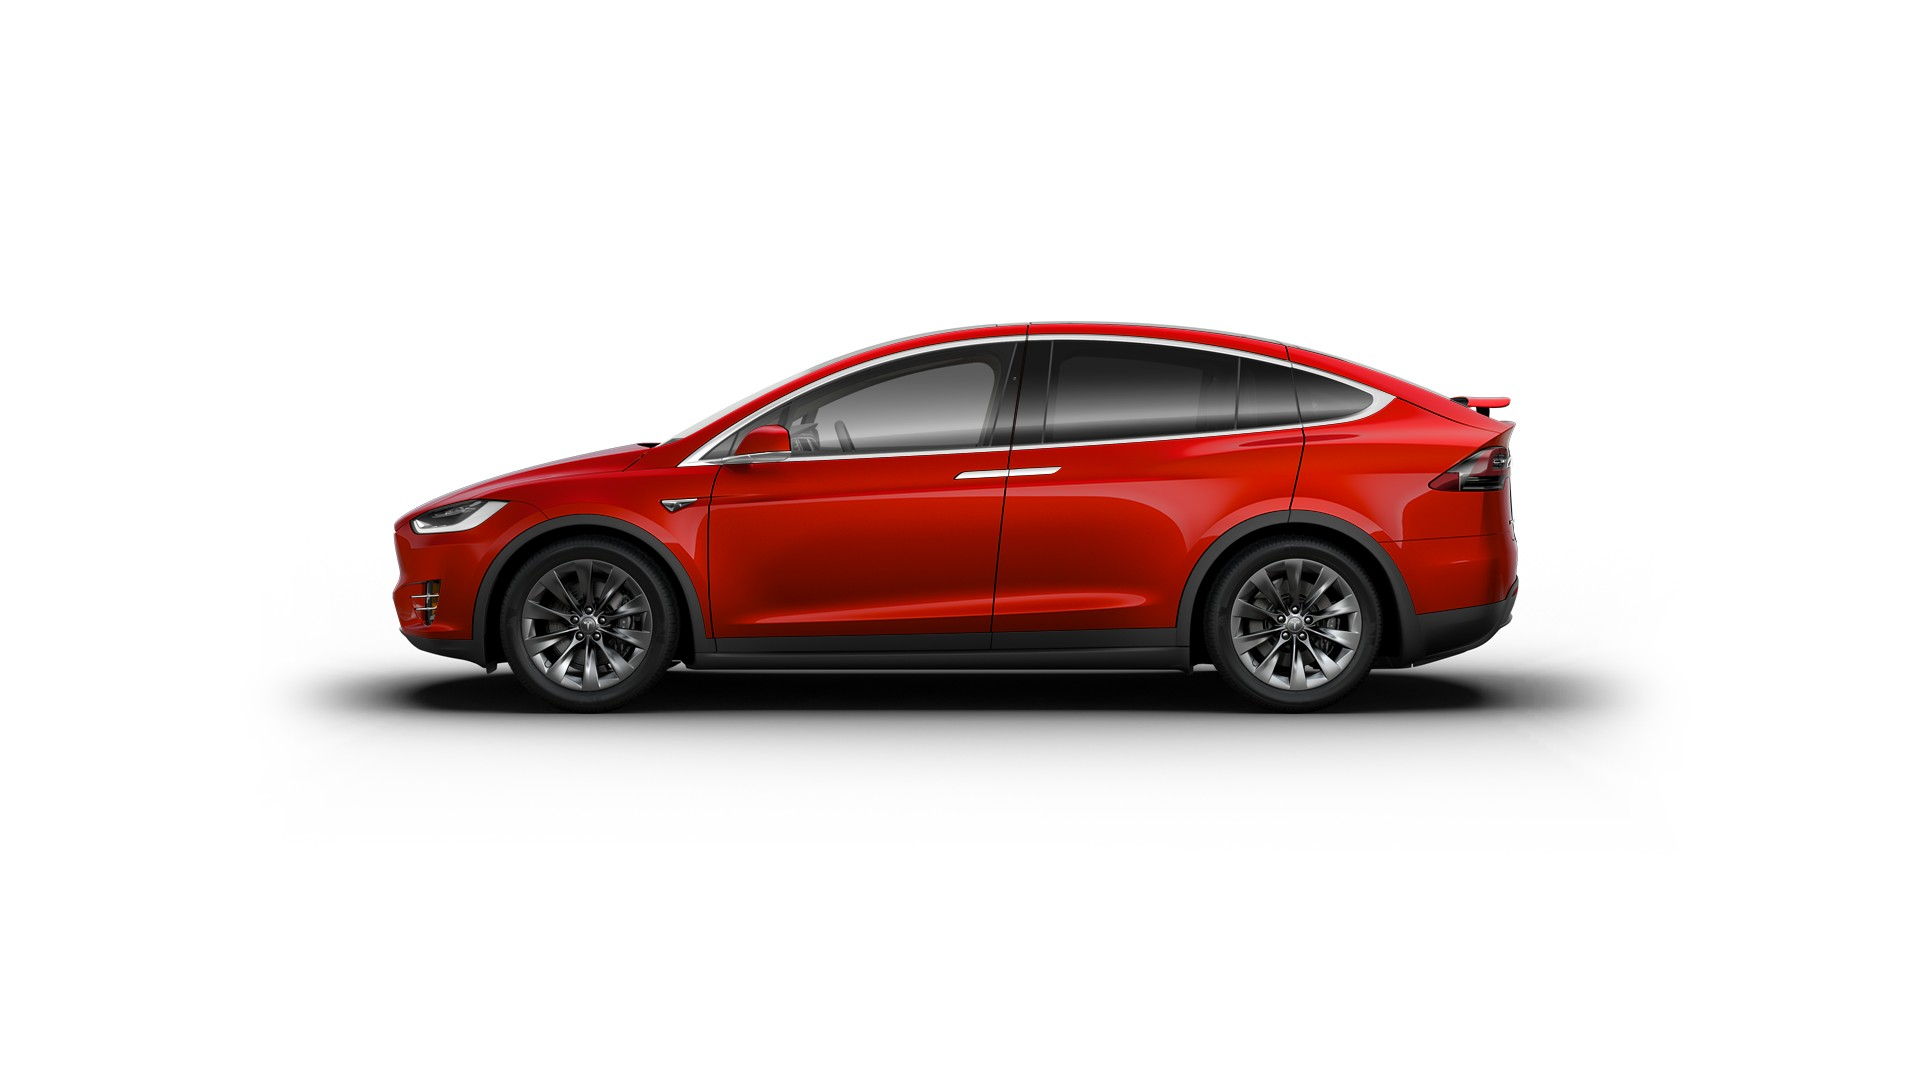 2017 tesla model x 100d red multi coat paint vin 5yjxcbe26hf065587 for sale in usa tesla deals. Black Bedroom Furniture Sets. Home Design Ideas